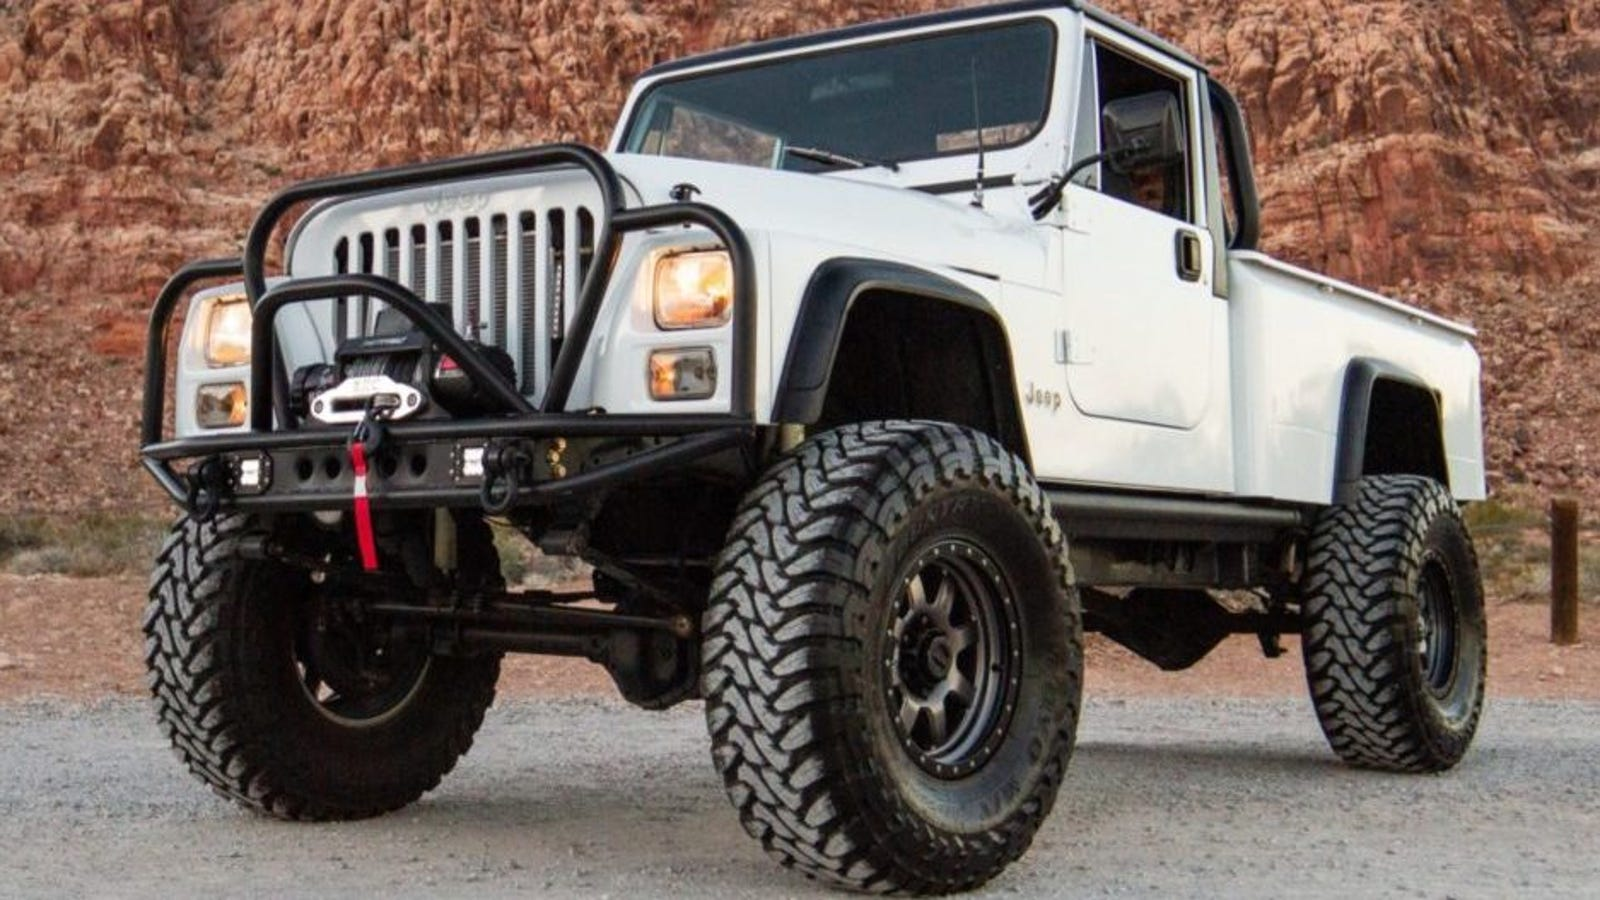 The Jeep CJ-10 Is the Ugliest Jeep Truck Ever but This One